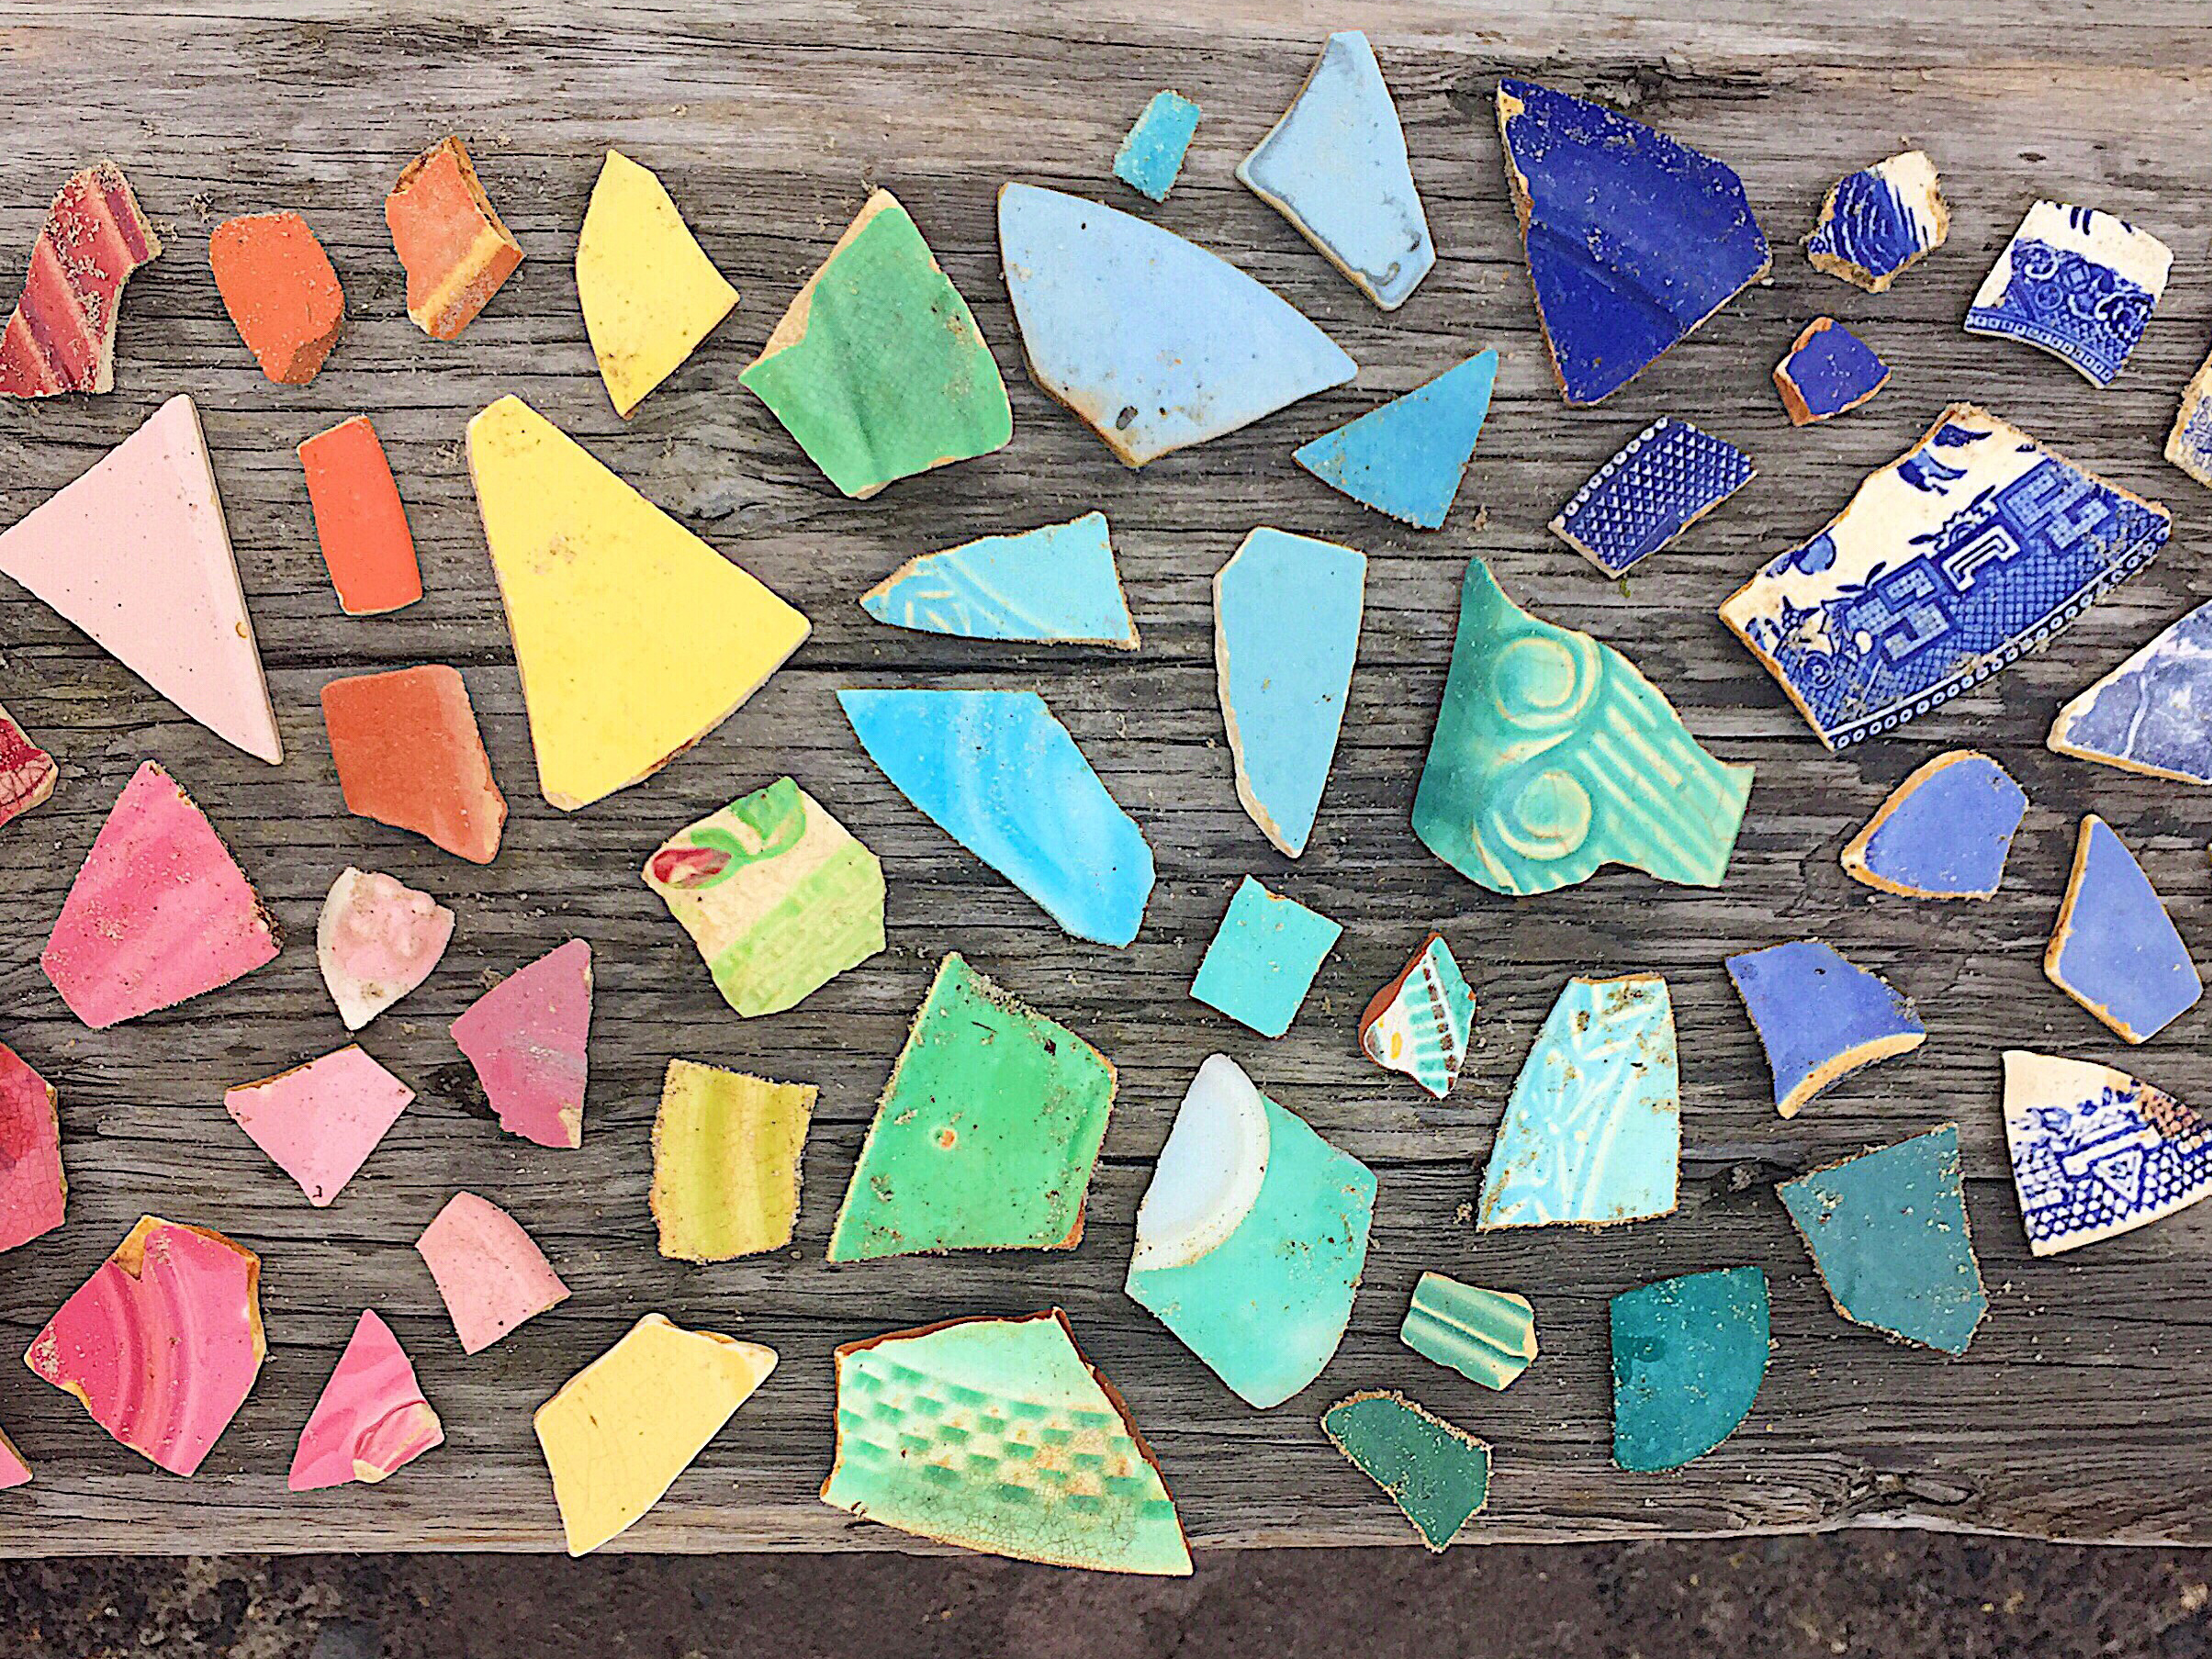 amy_chen_design_dead_horse_bay_beachcombing_finds_pottery